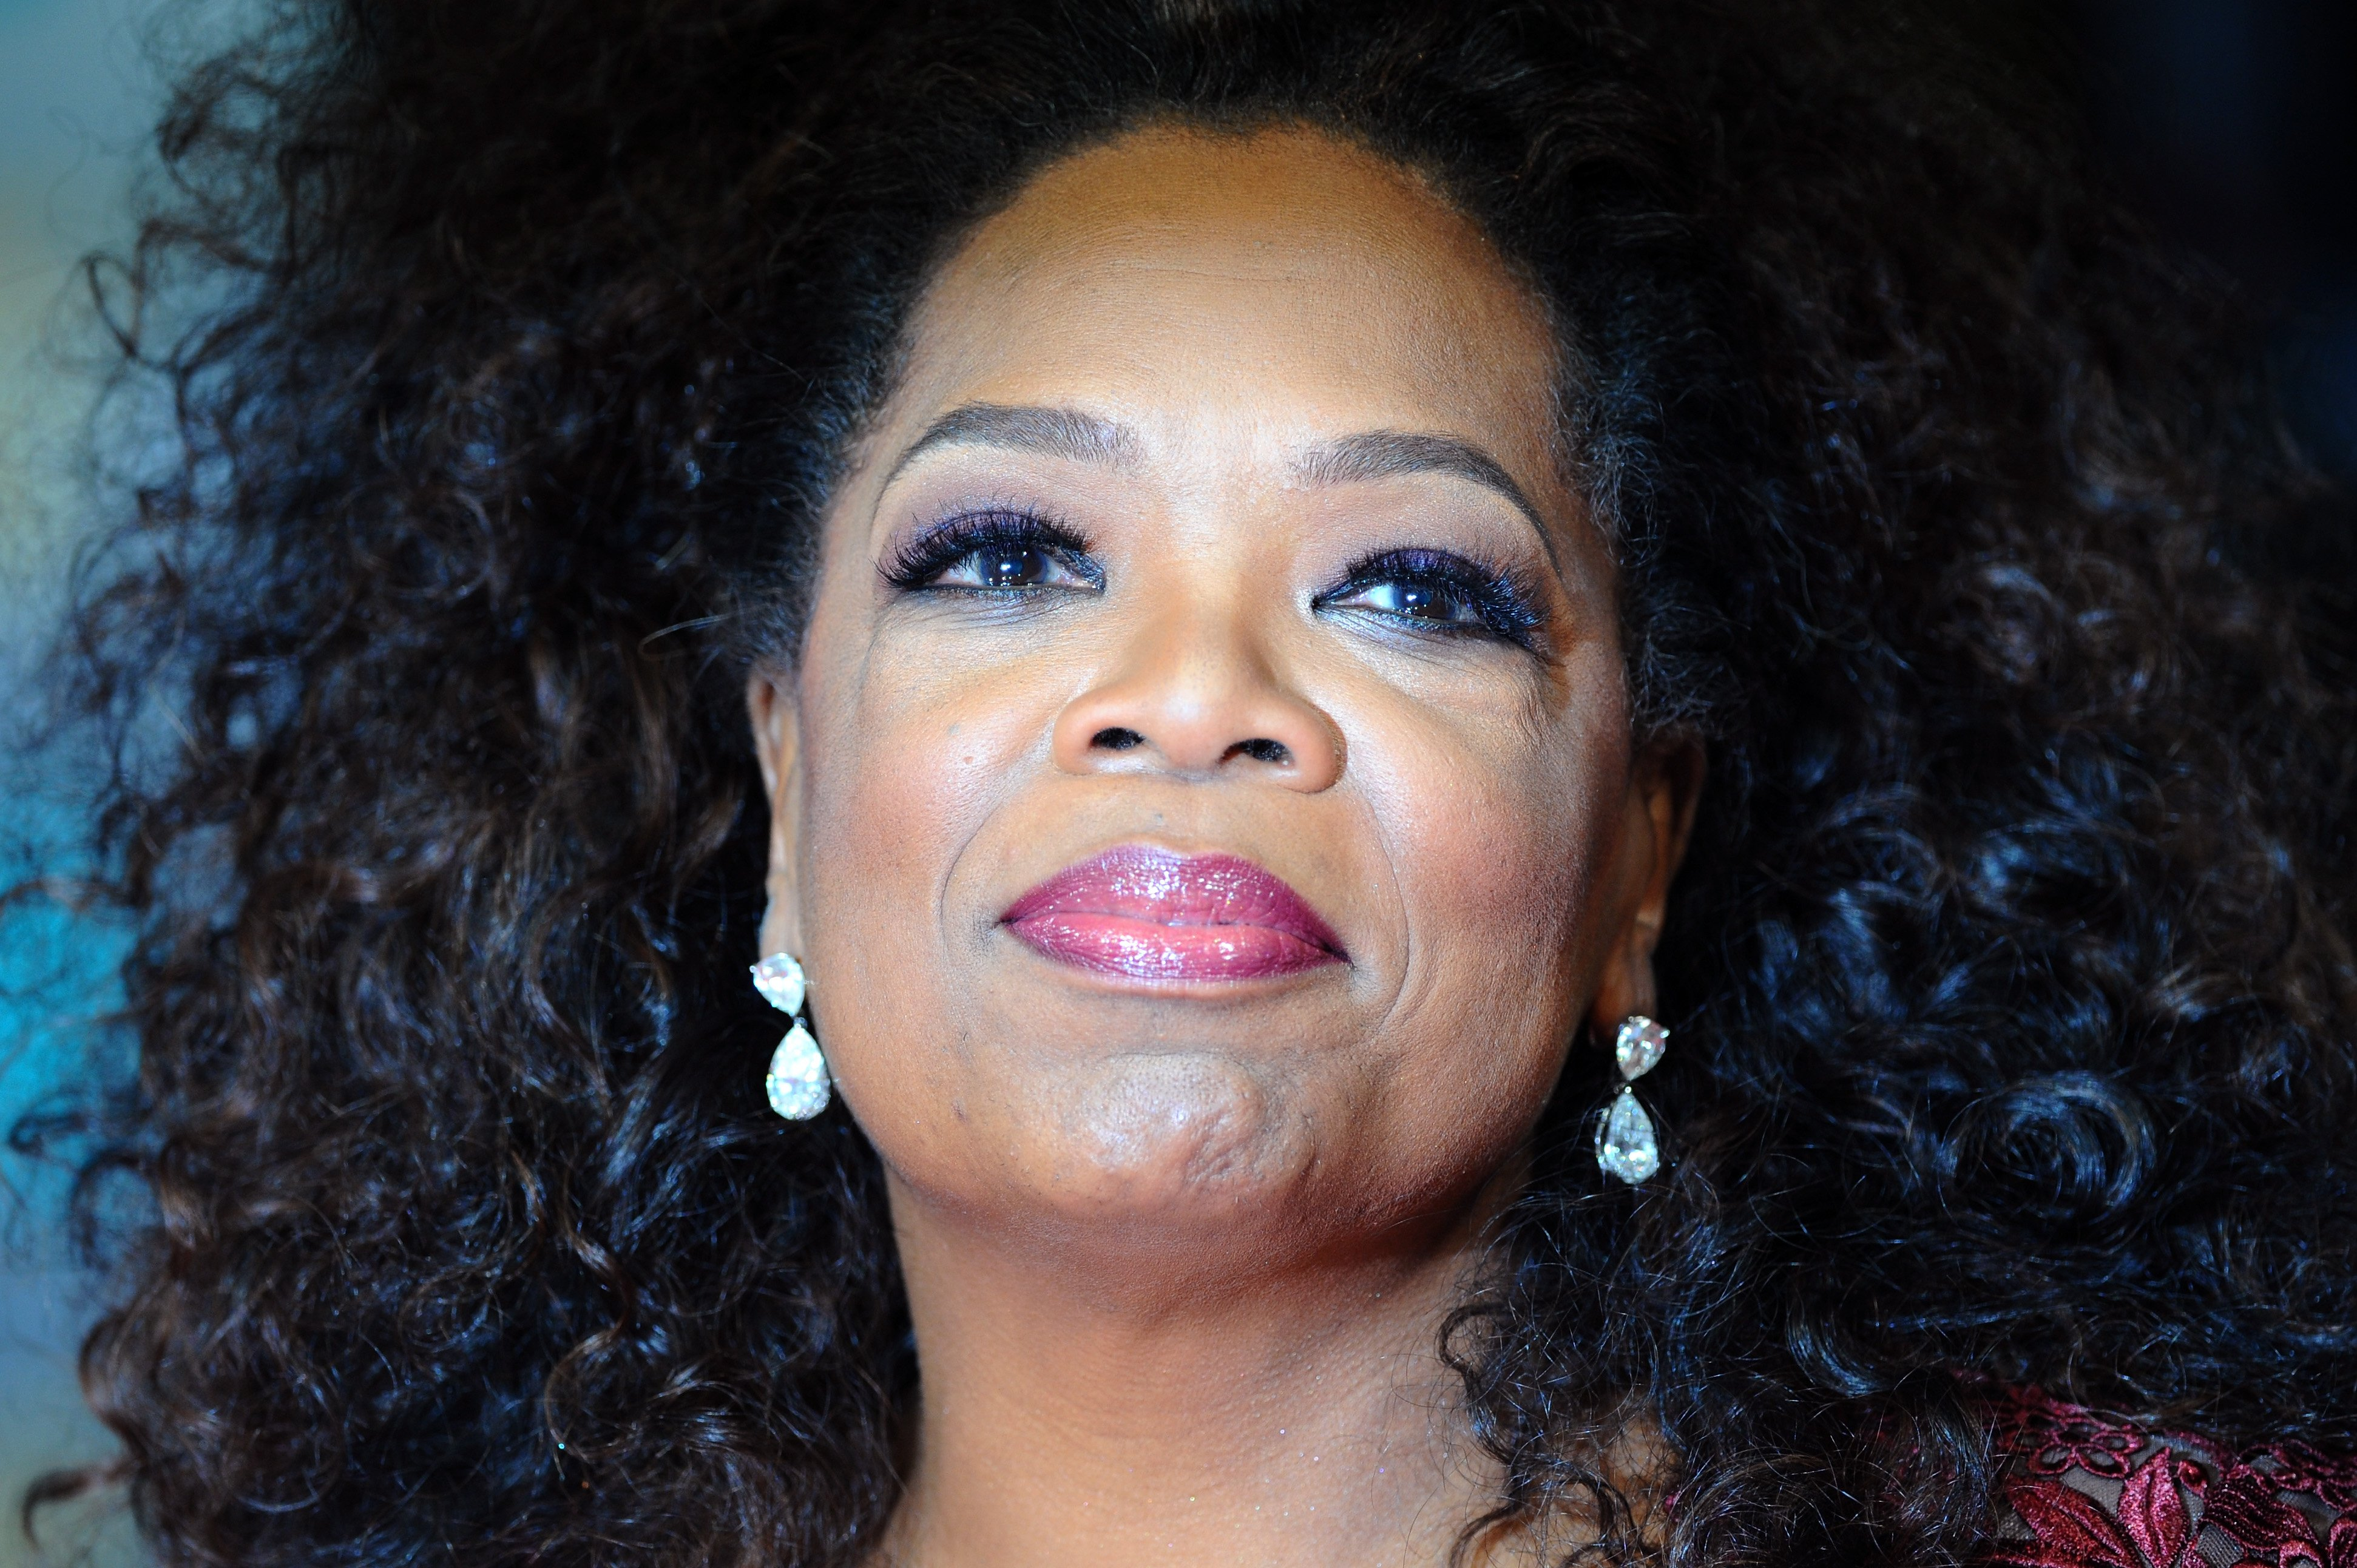 Oprah Winfrey attends the EE British Academy Film Awards 2014 at The Royal Opera House on February 16, 2014 in London, England.   Source: Getty Image